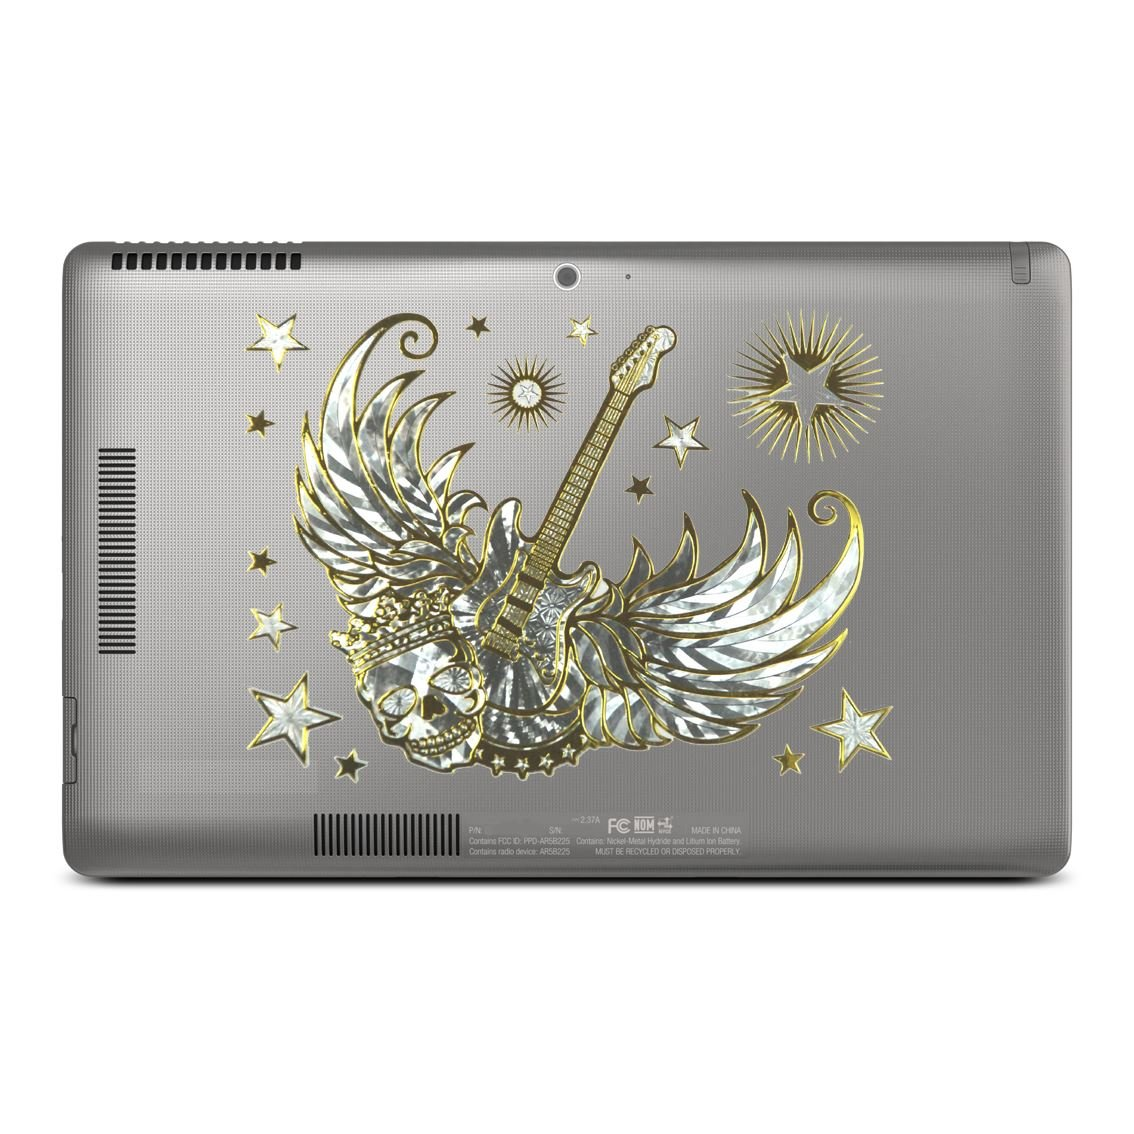 LT230 CrazyGadget/® Universal Self Adhesive Laptop Skins Stickers Decals Aluminium Foil Based Stickers Silver Glitter Dragon